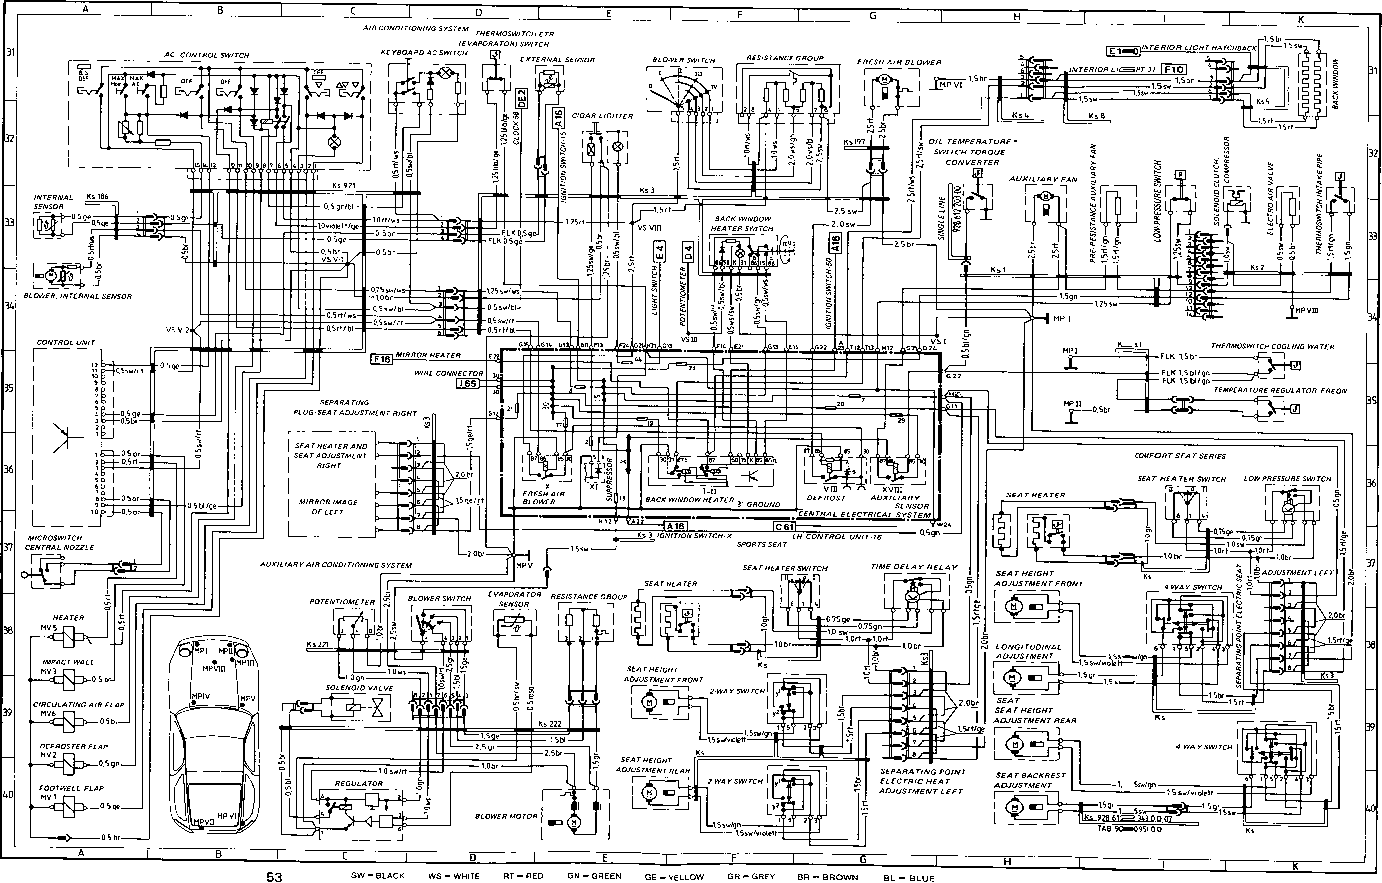 1978 porsche 924 wiring diagram nordyne ac capacitor  for free